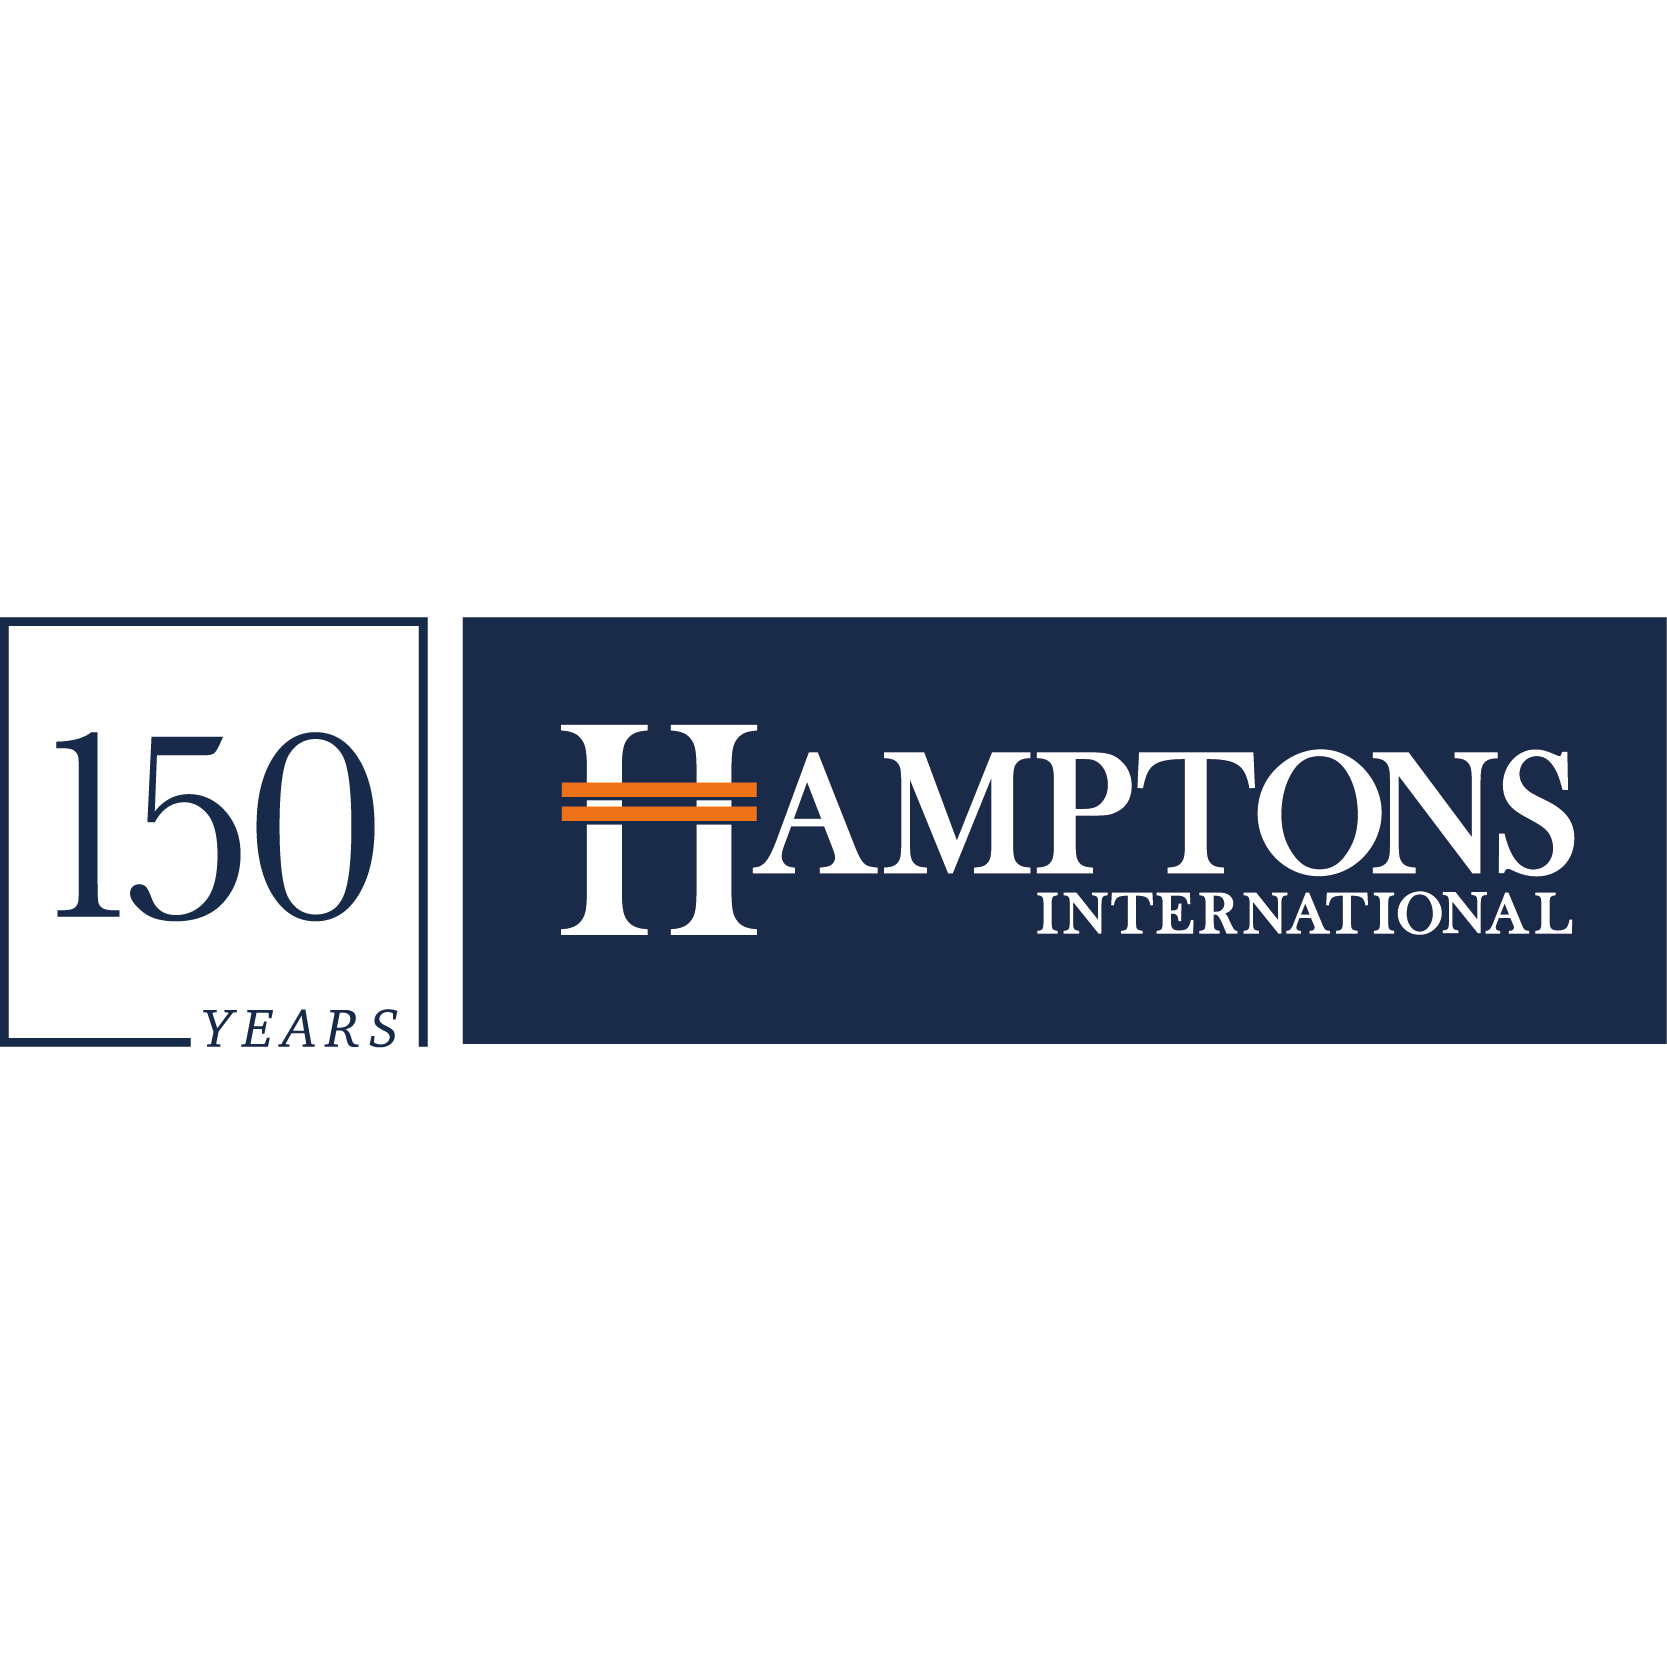 Hamptons International Estate Agents Balham - London, London SW12 9ET - 020 8945 5962 | ShowMeLocal.com